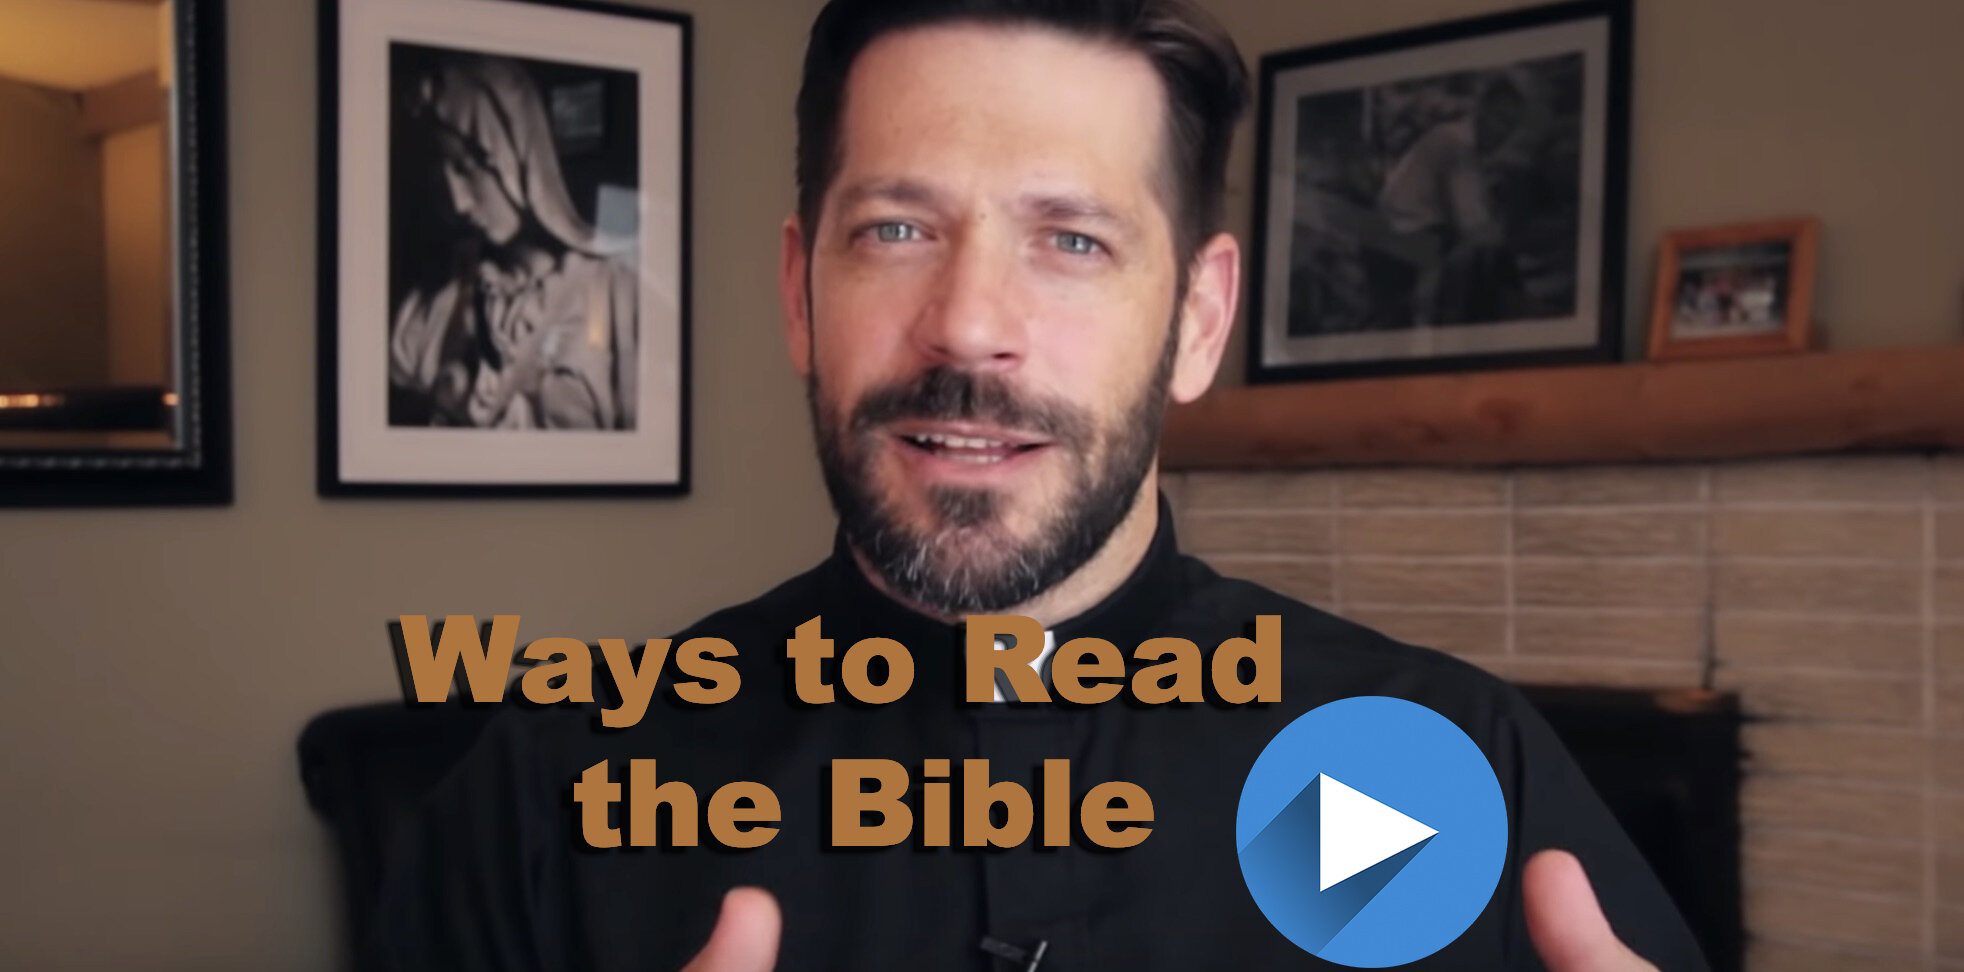 BIBLE VIDEO 2 COVERwith arrow .jpg